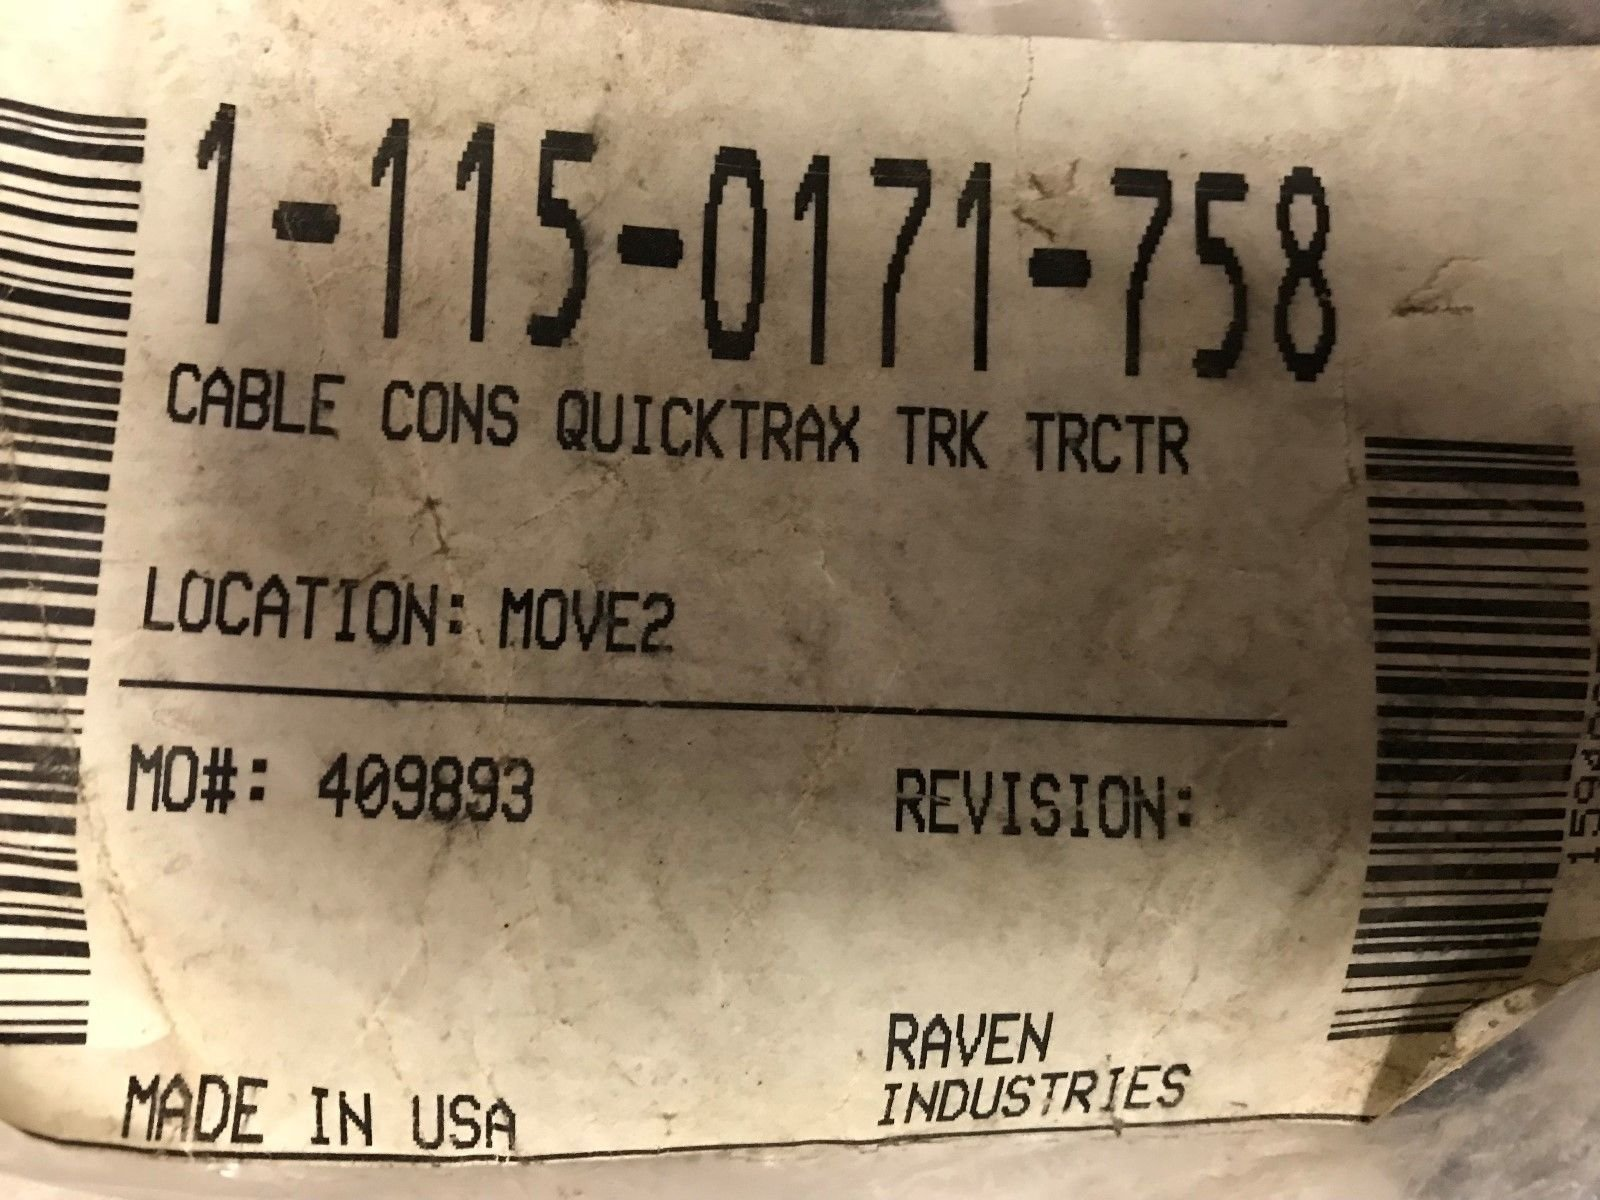 Raven 115-0171-758 Cable Console Cable Quicktrax